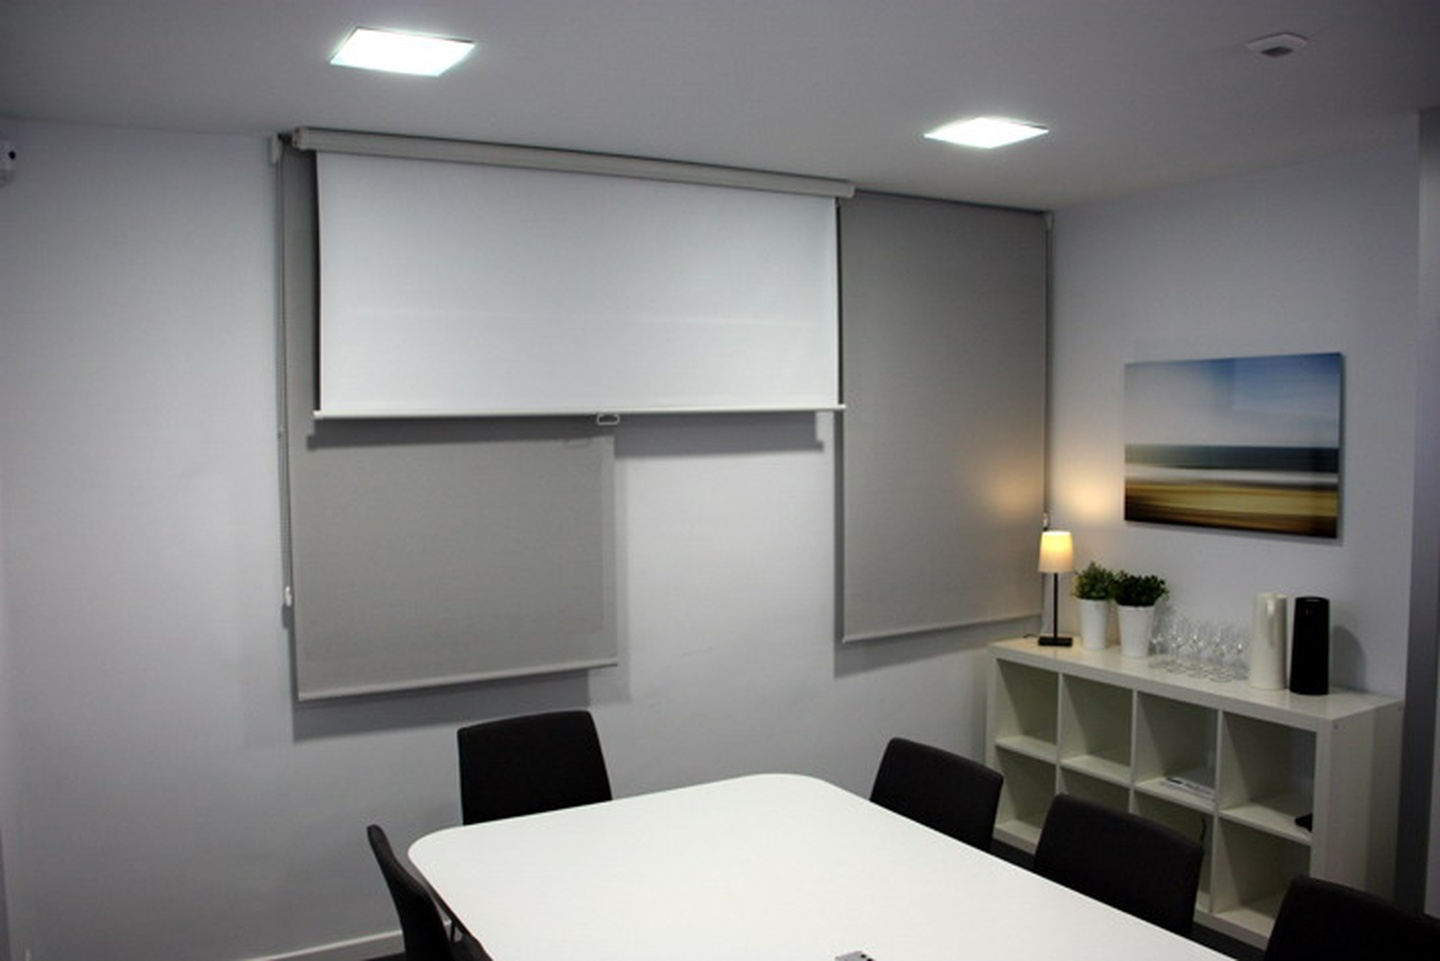 Madrid conference rooms Meetingraum WorkLab - Meeting Room image 1